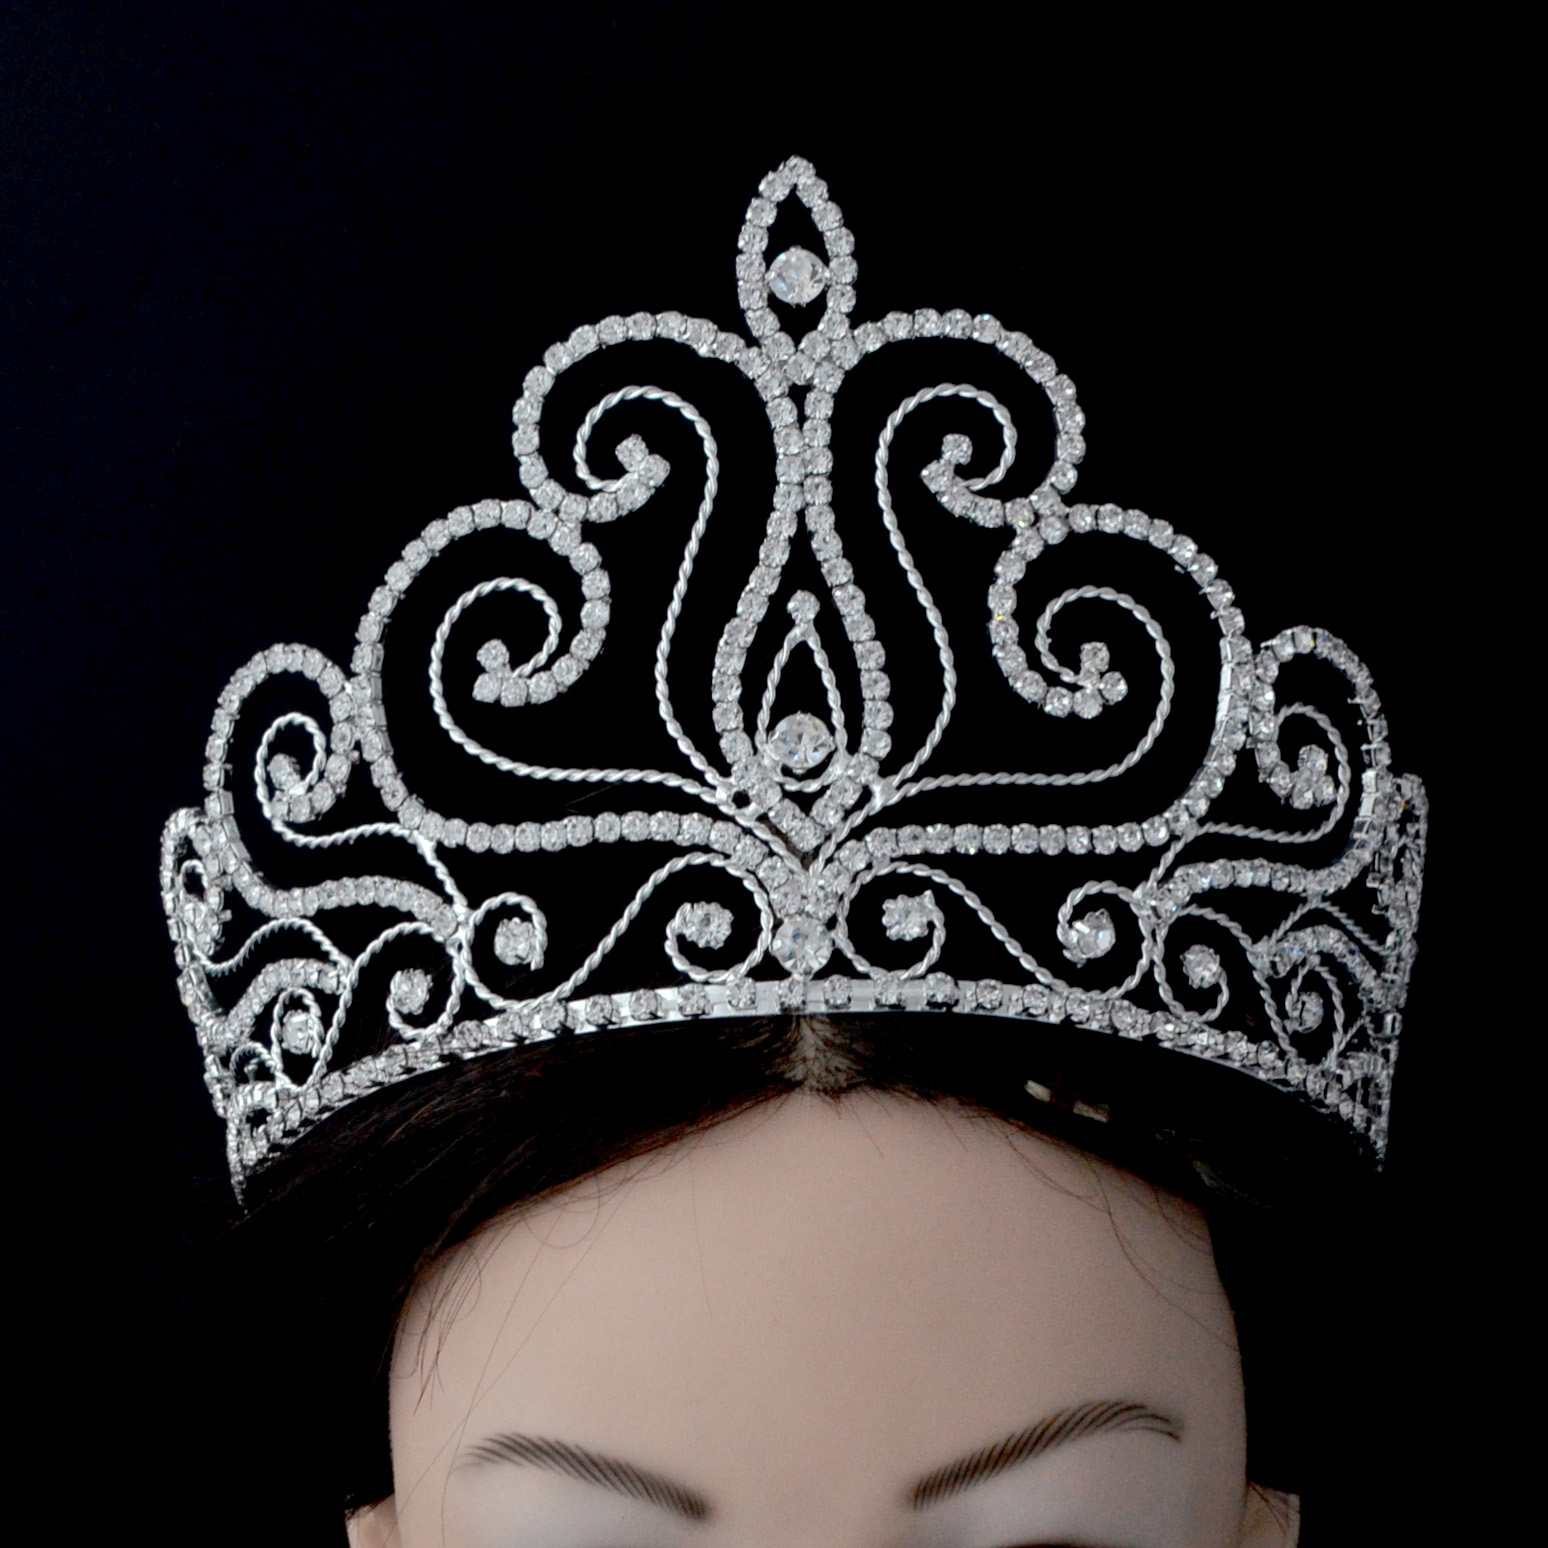 Fashion Rhinestone Tiaras Pageant Crowns Full Round Hairwear Jewelry Hair Accessories Prom For Beauty Women Girl Mo197